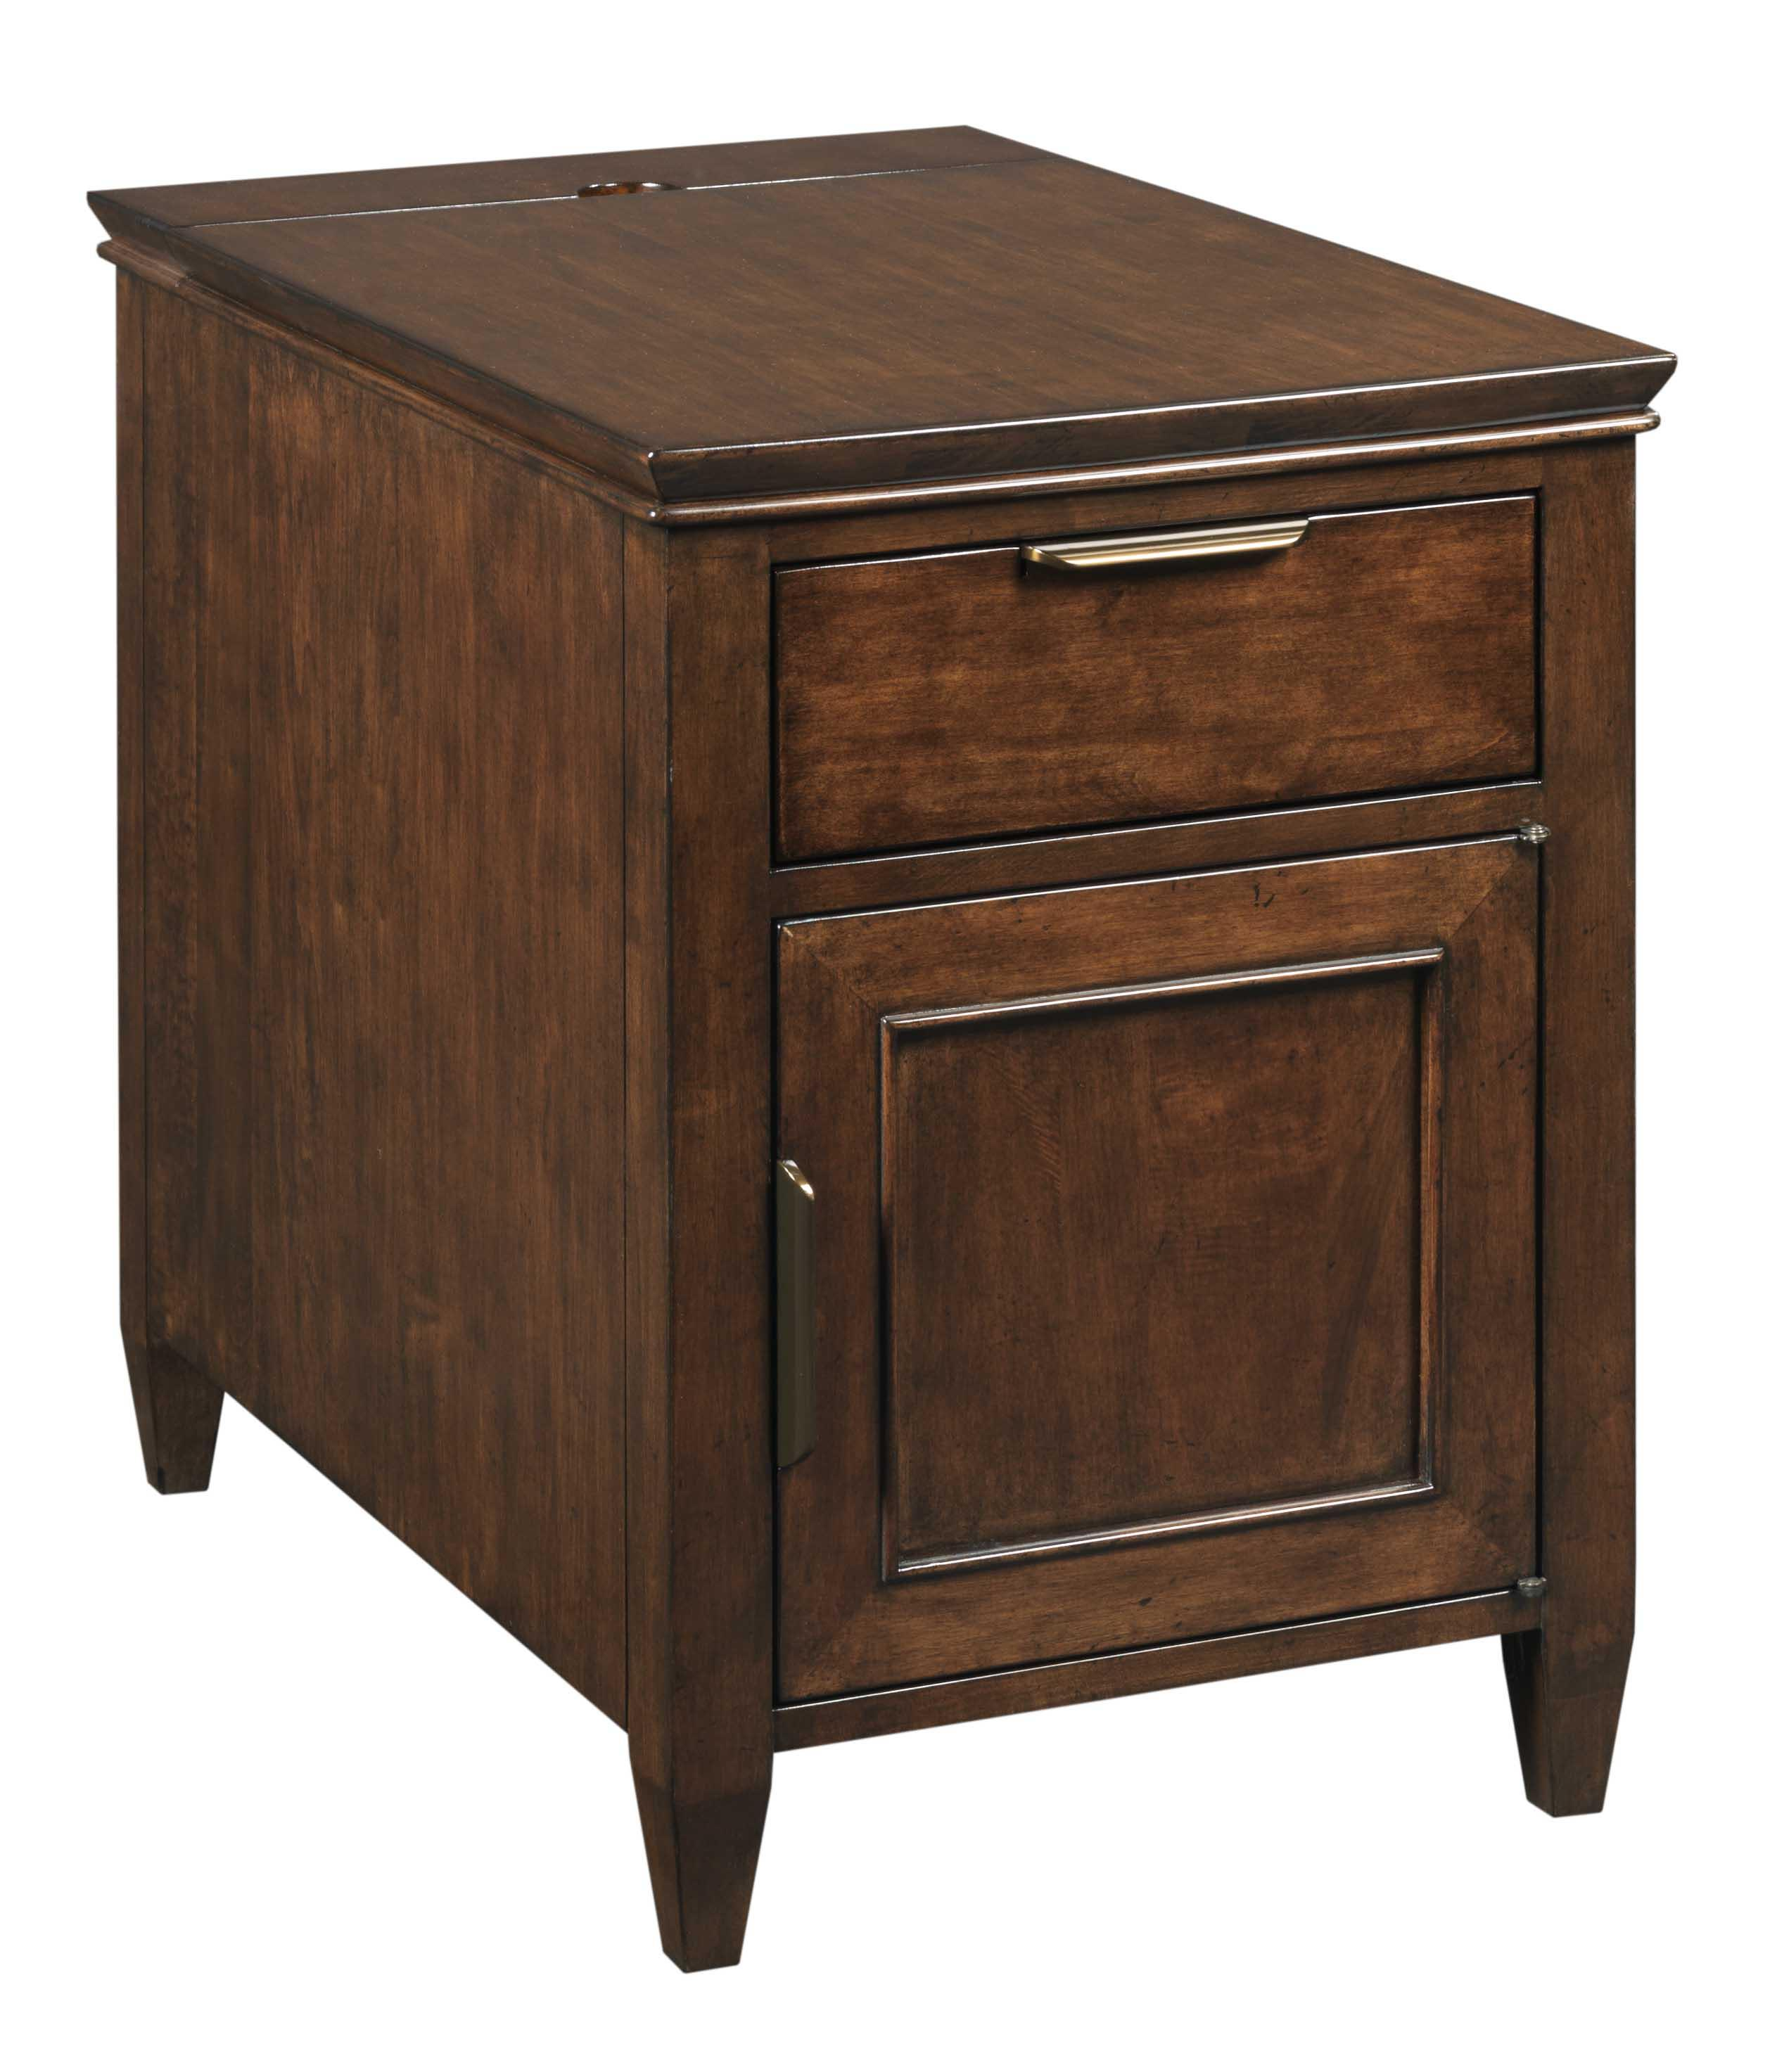 Elise Elise Chairside Chest by Kincaid Furniture at Johnny Janosik